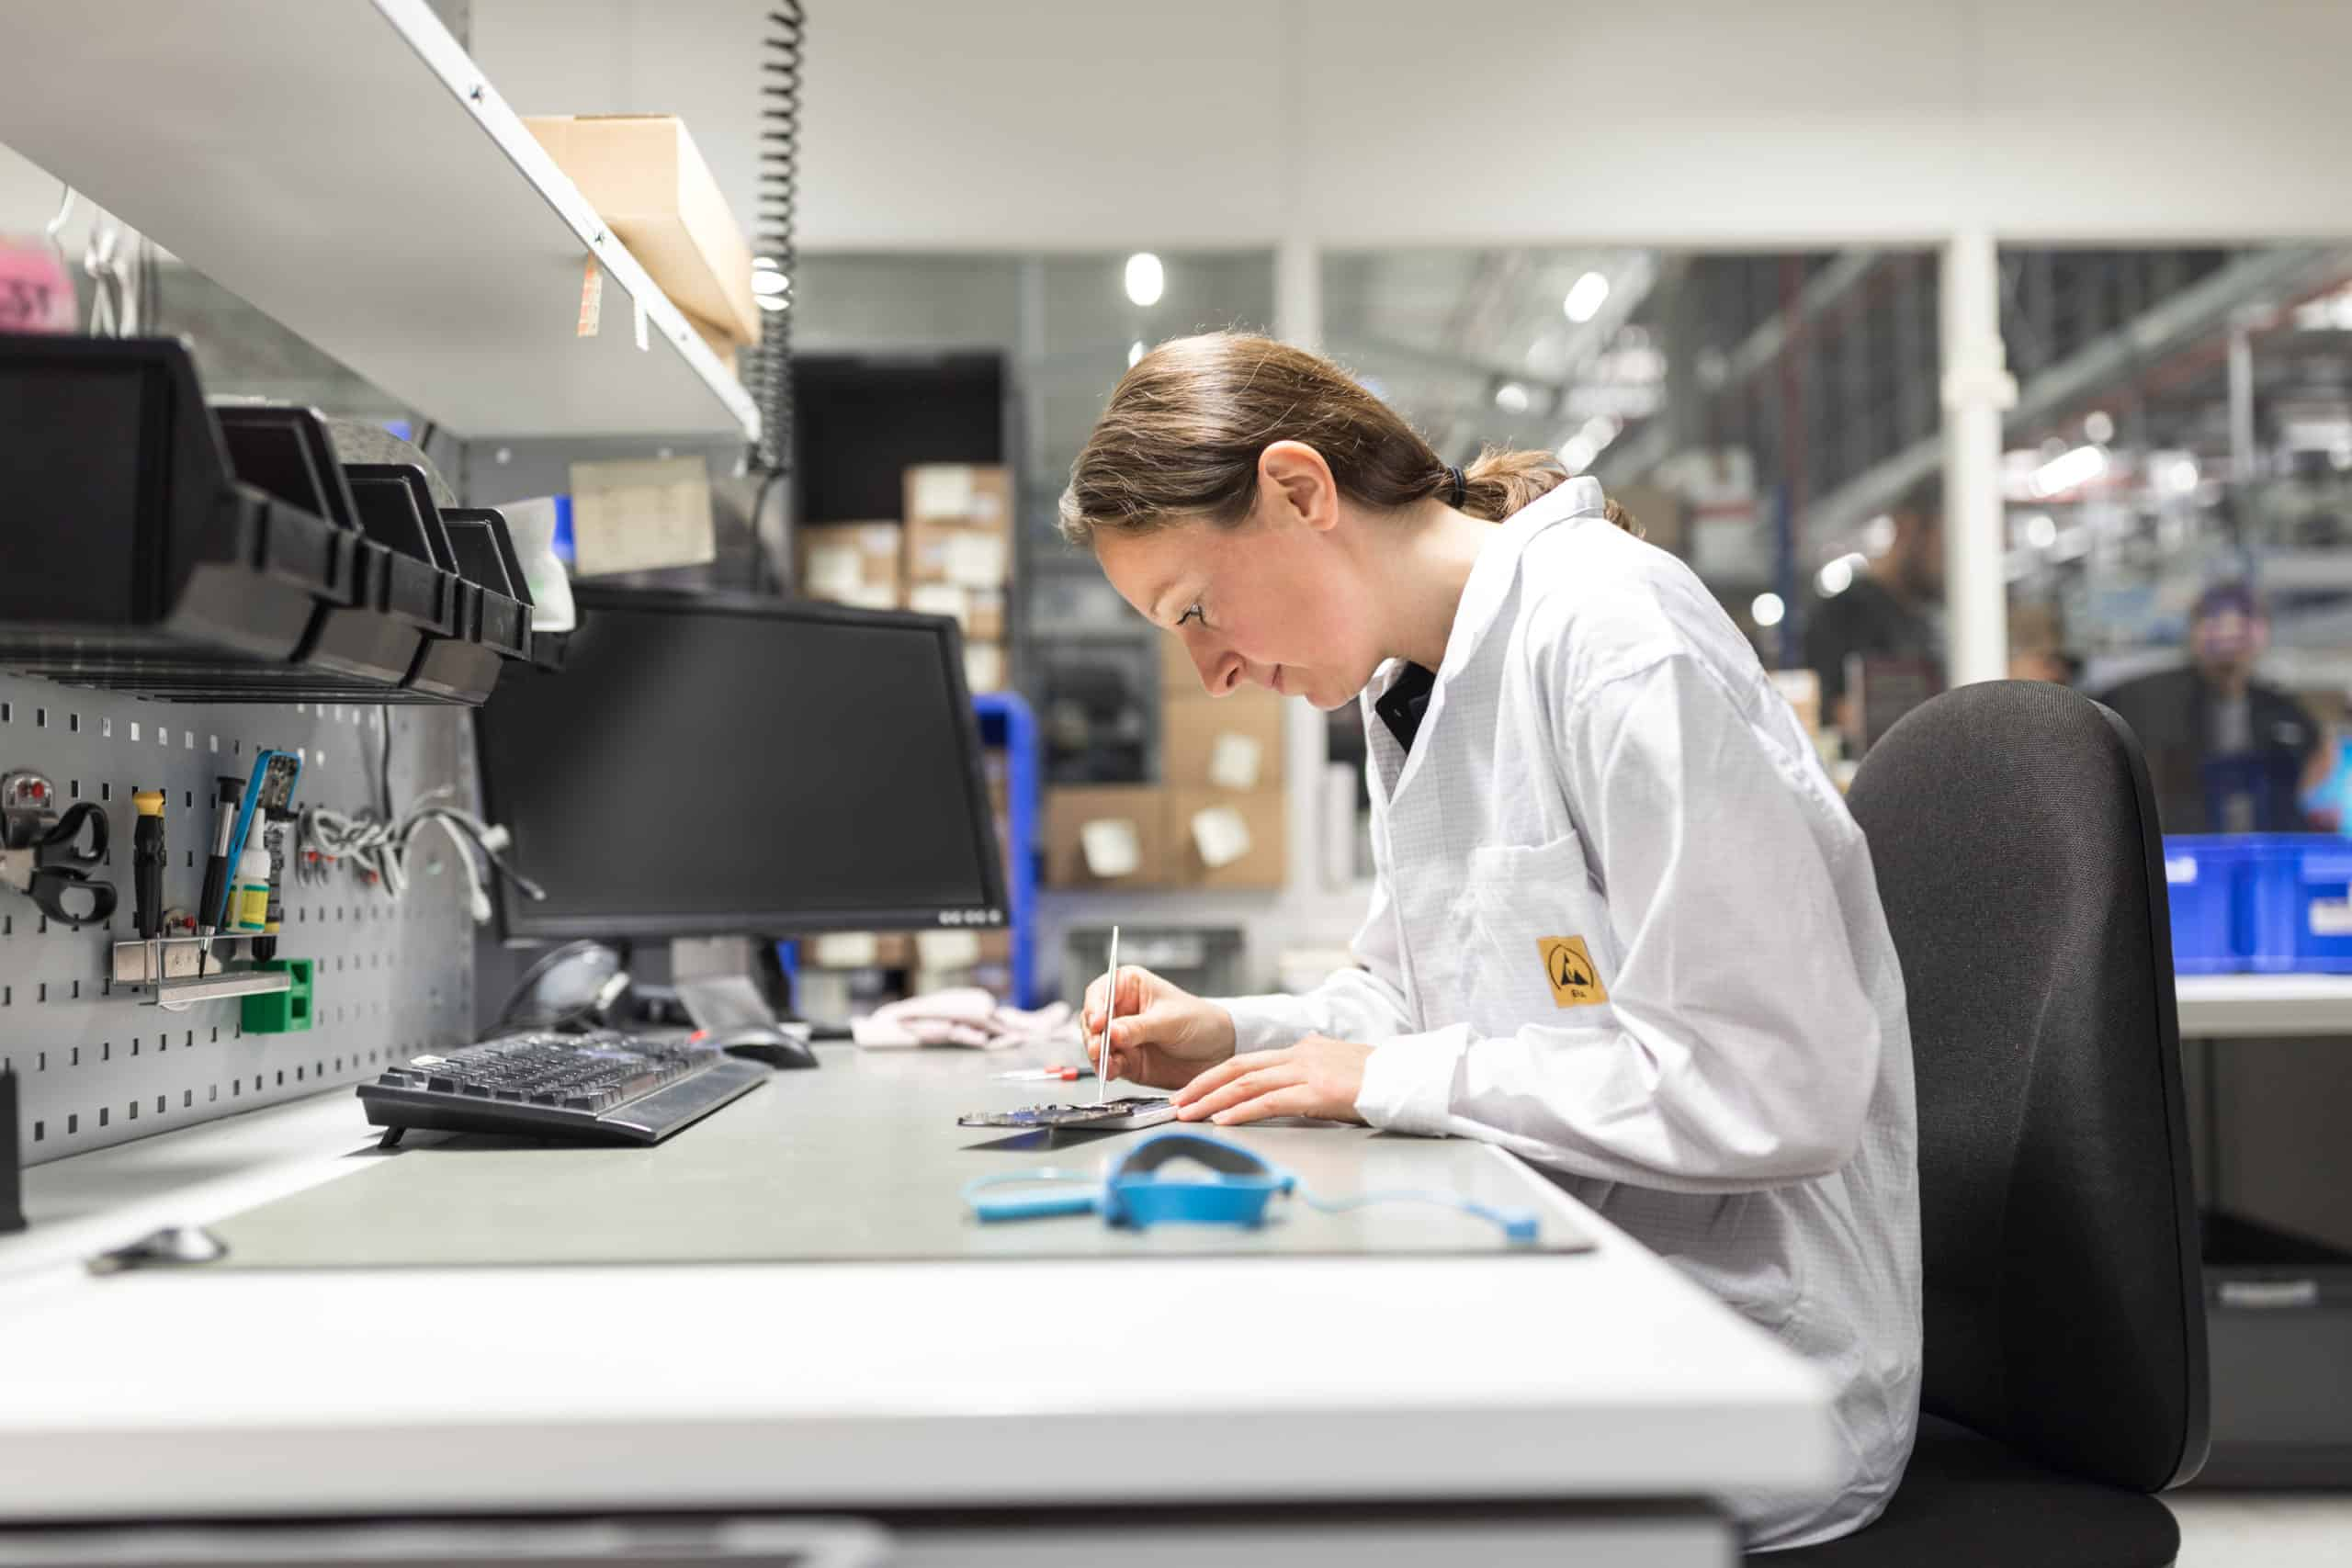 Employee at repair station for smartphones in a production facility